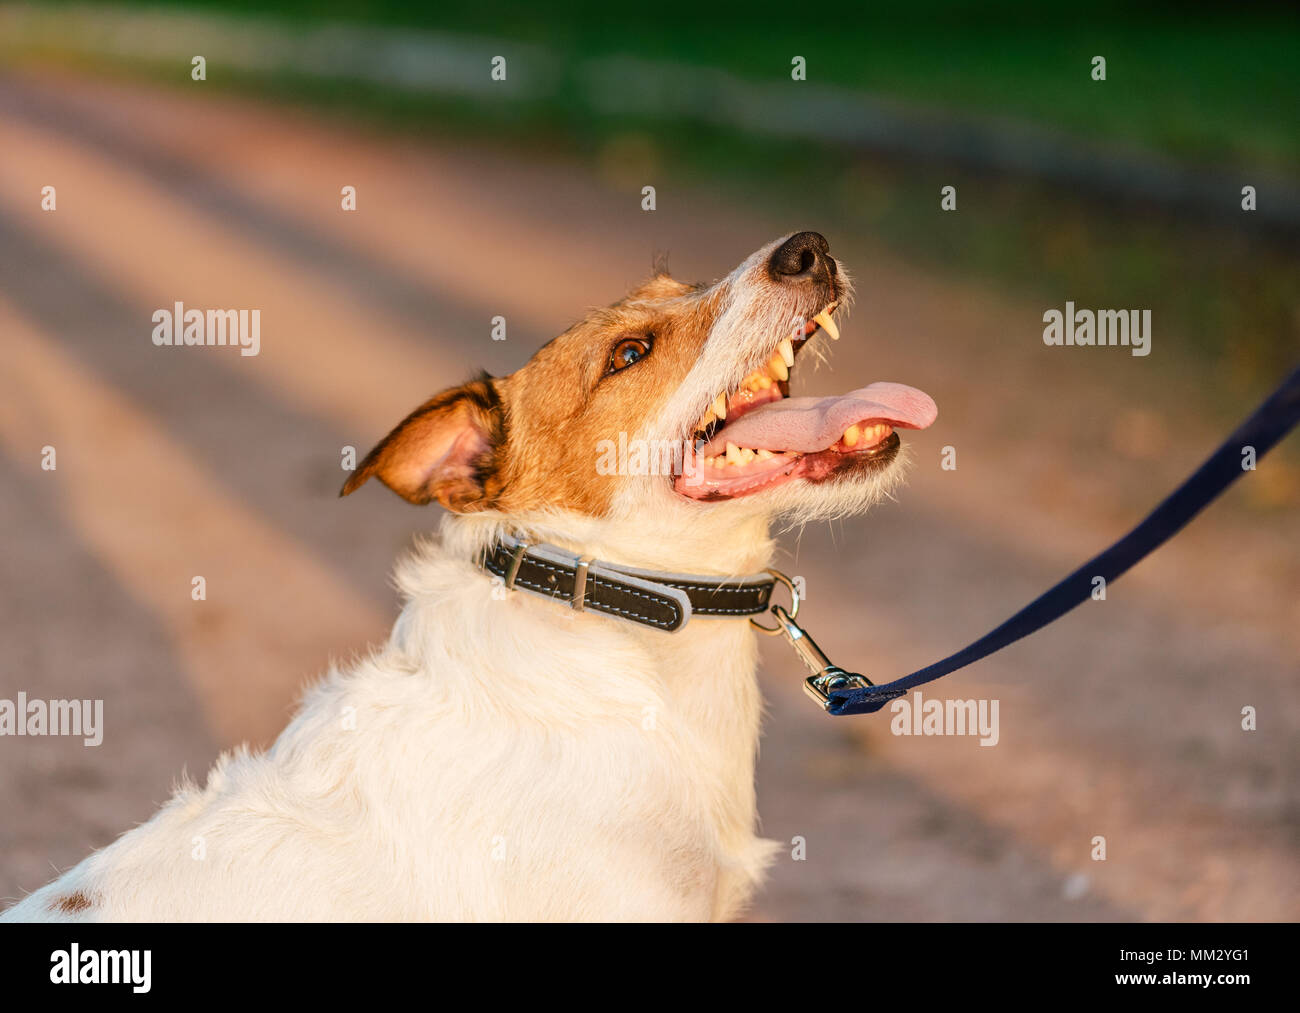 Dog with collar and leash looking up and listening owner during obedience training - Stock Image